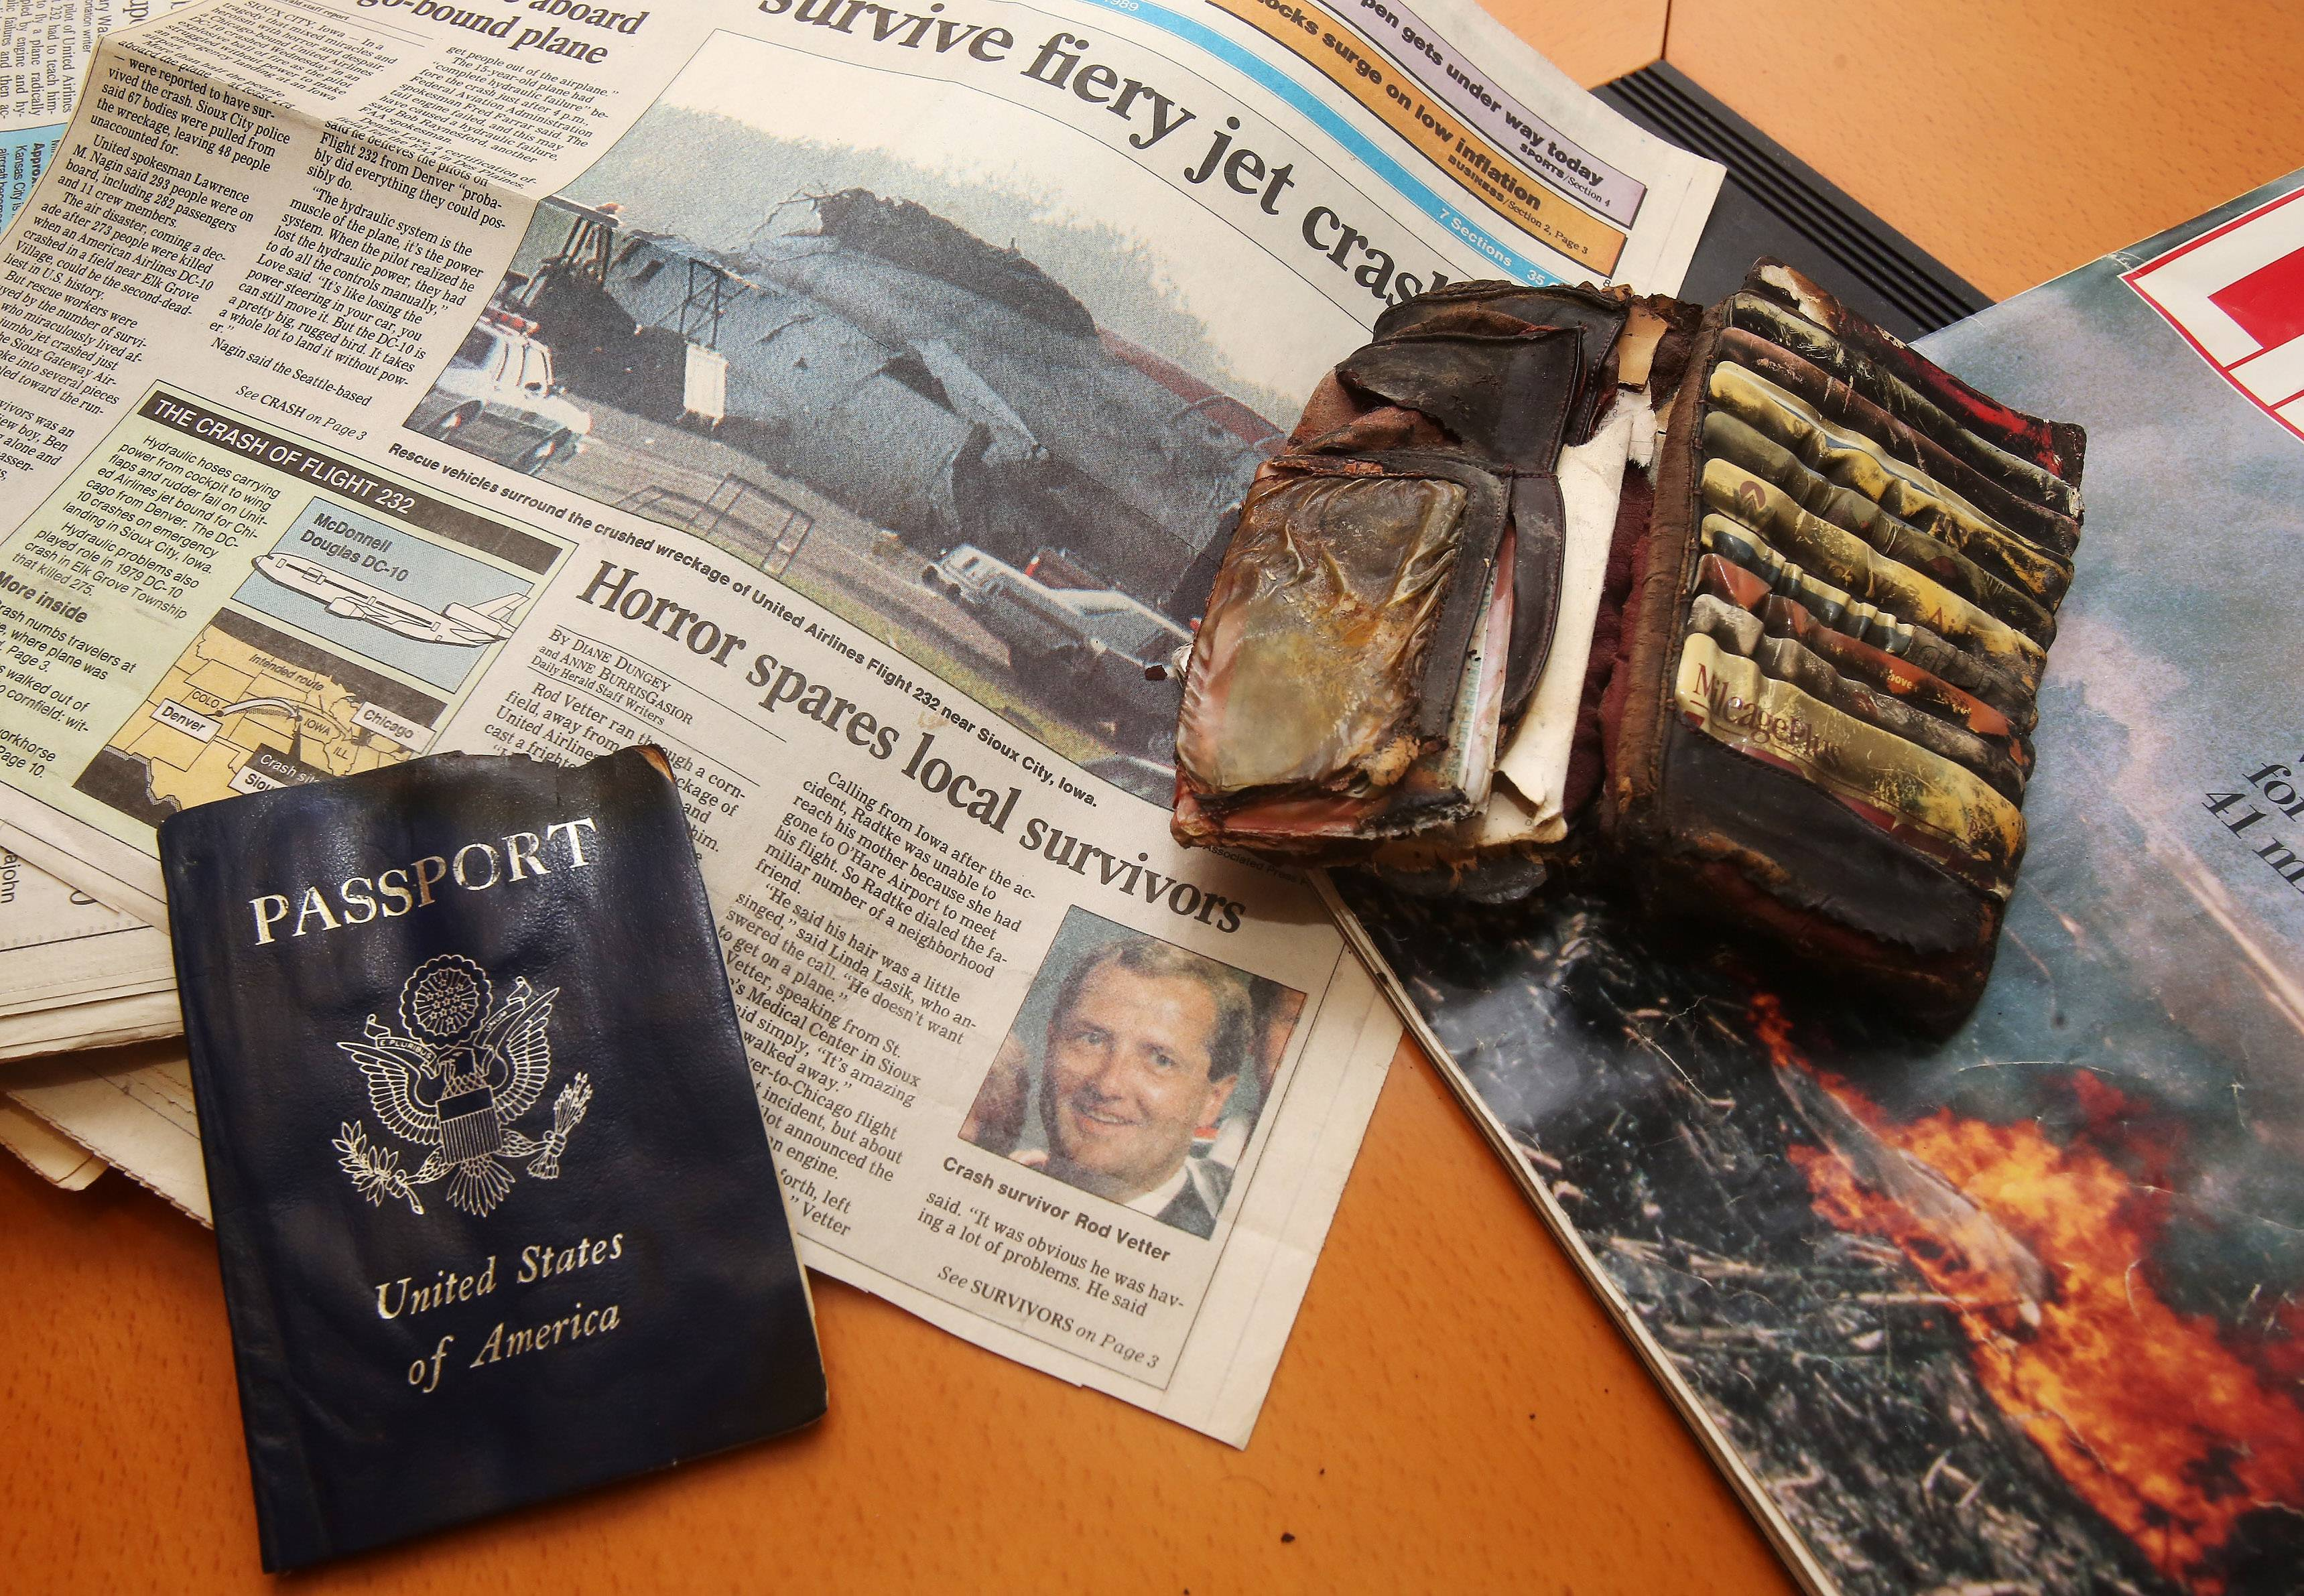 Items of Libertyville resident Rod Vetter as he describes his experience surviving the crash of United Airlines Flight 232 on July 19, 1989 in Sioux City, Iowa.